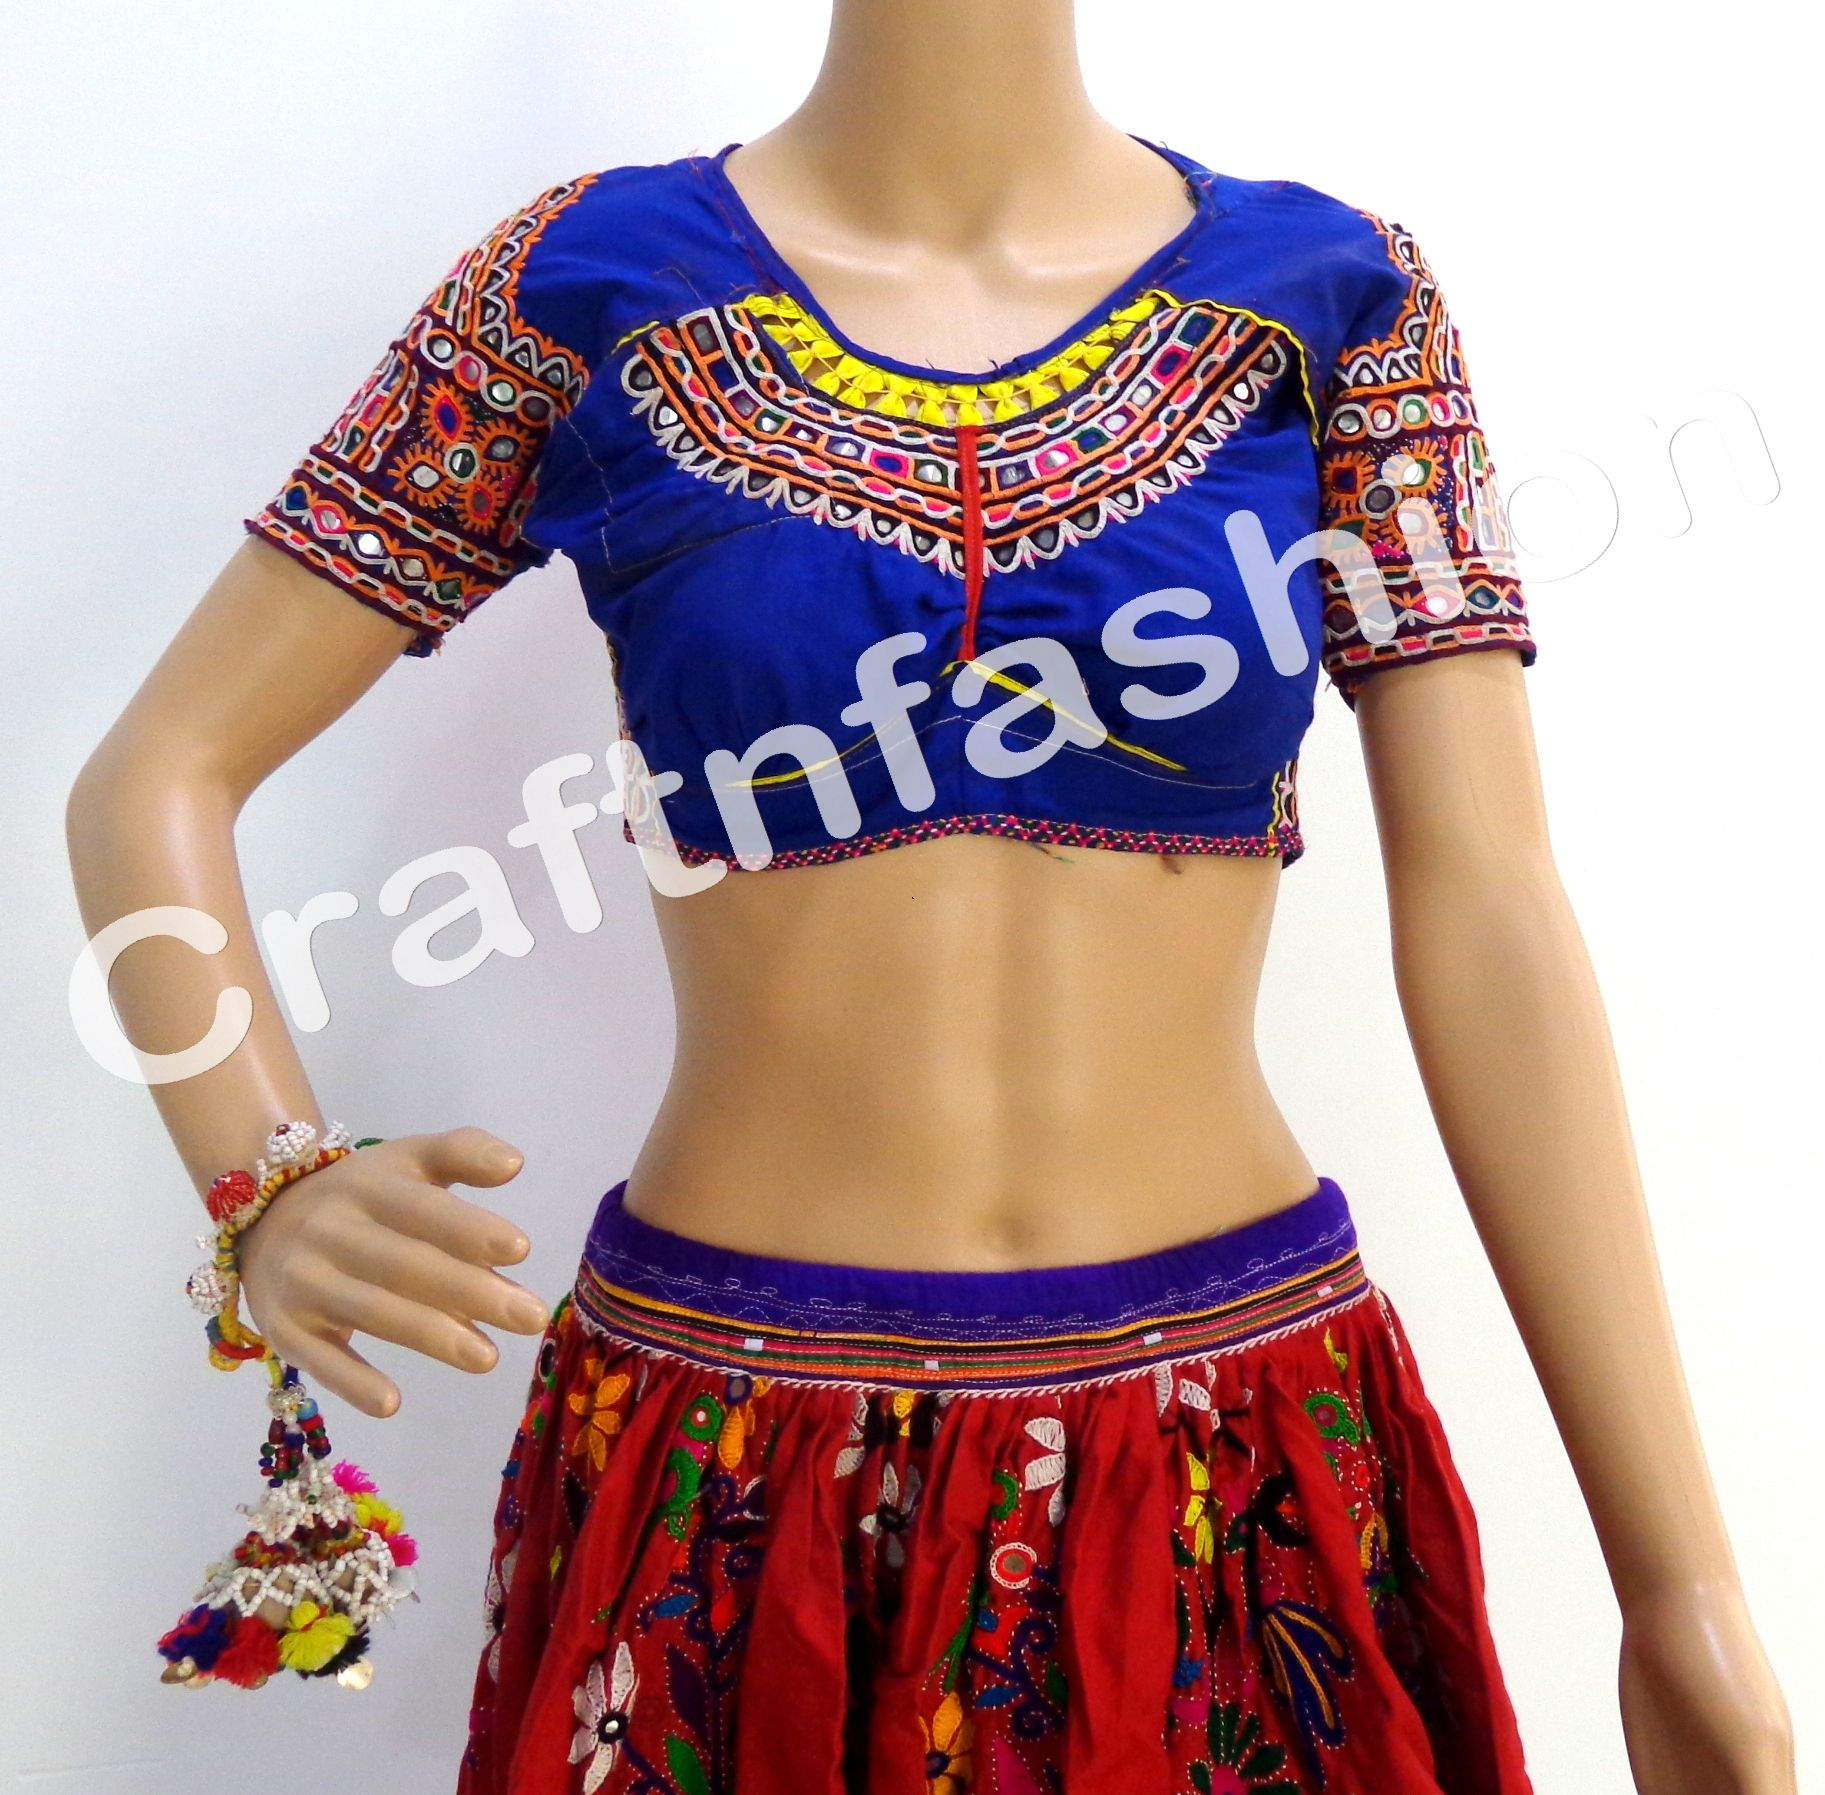 #rabarimirrorworkblouse #rabarilaceworkblouse #rabariglassworkblouse  by  #CraftsOfGujarat #craftnfashion #meghcraft #indianethnicjewelry #IndianTraditionalJewelry Megh Craft - Indian Ethnic Jewelry